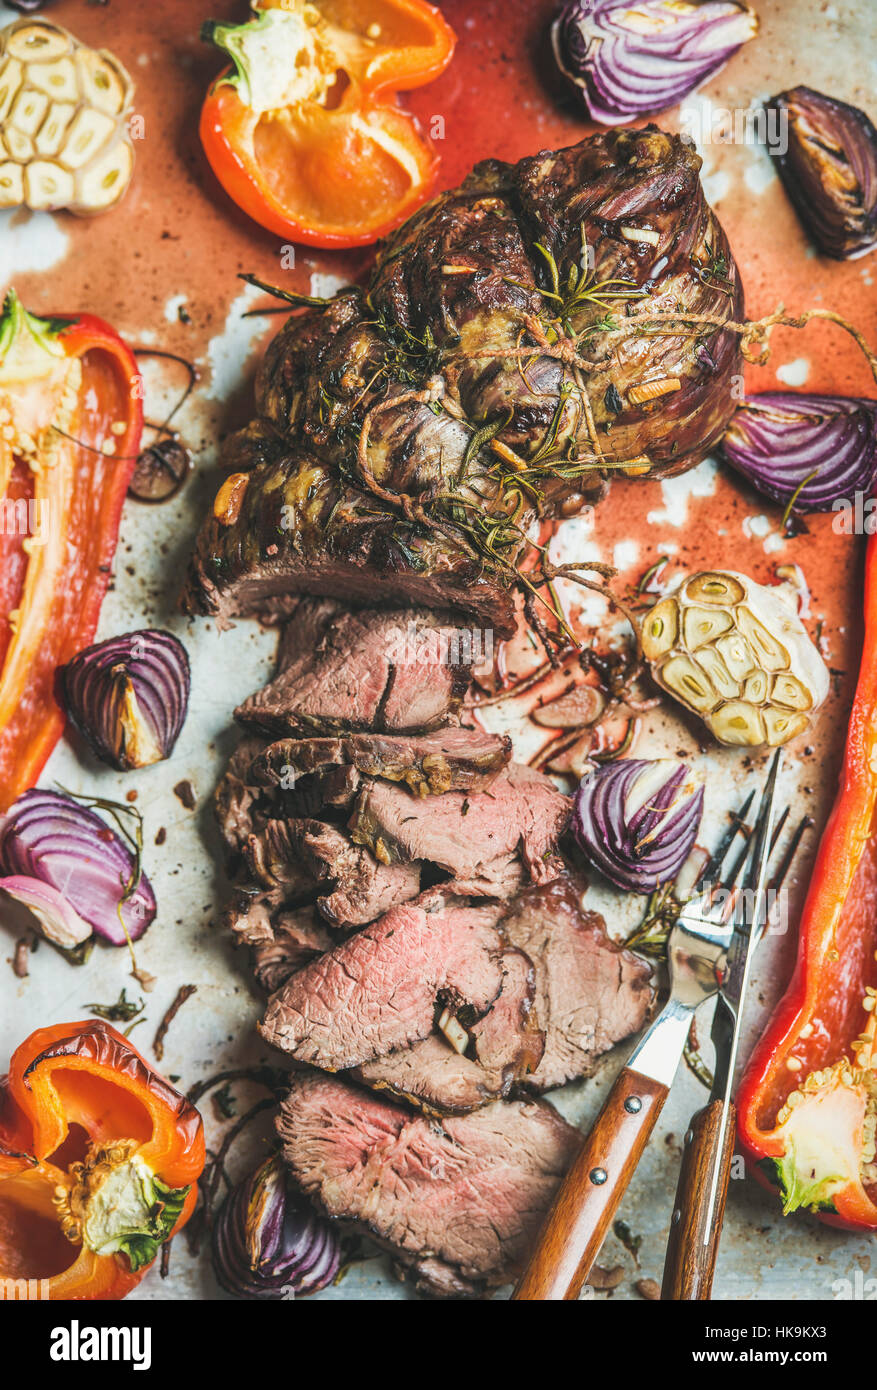 Cooked Roast beef meat with roasted vegetables and herbs in metal baking tray, top view, vertical composition. Slow - Stock Image